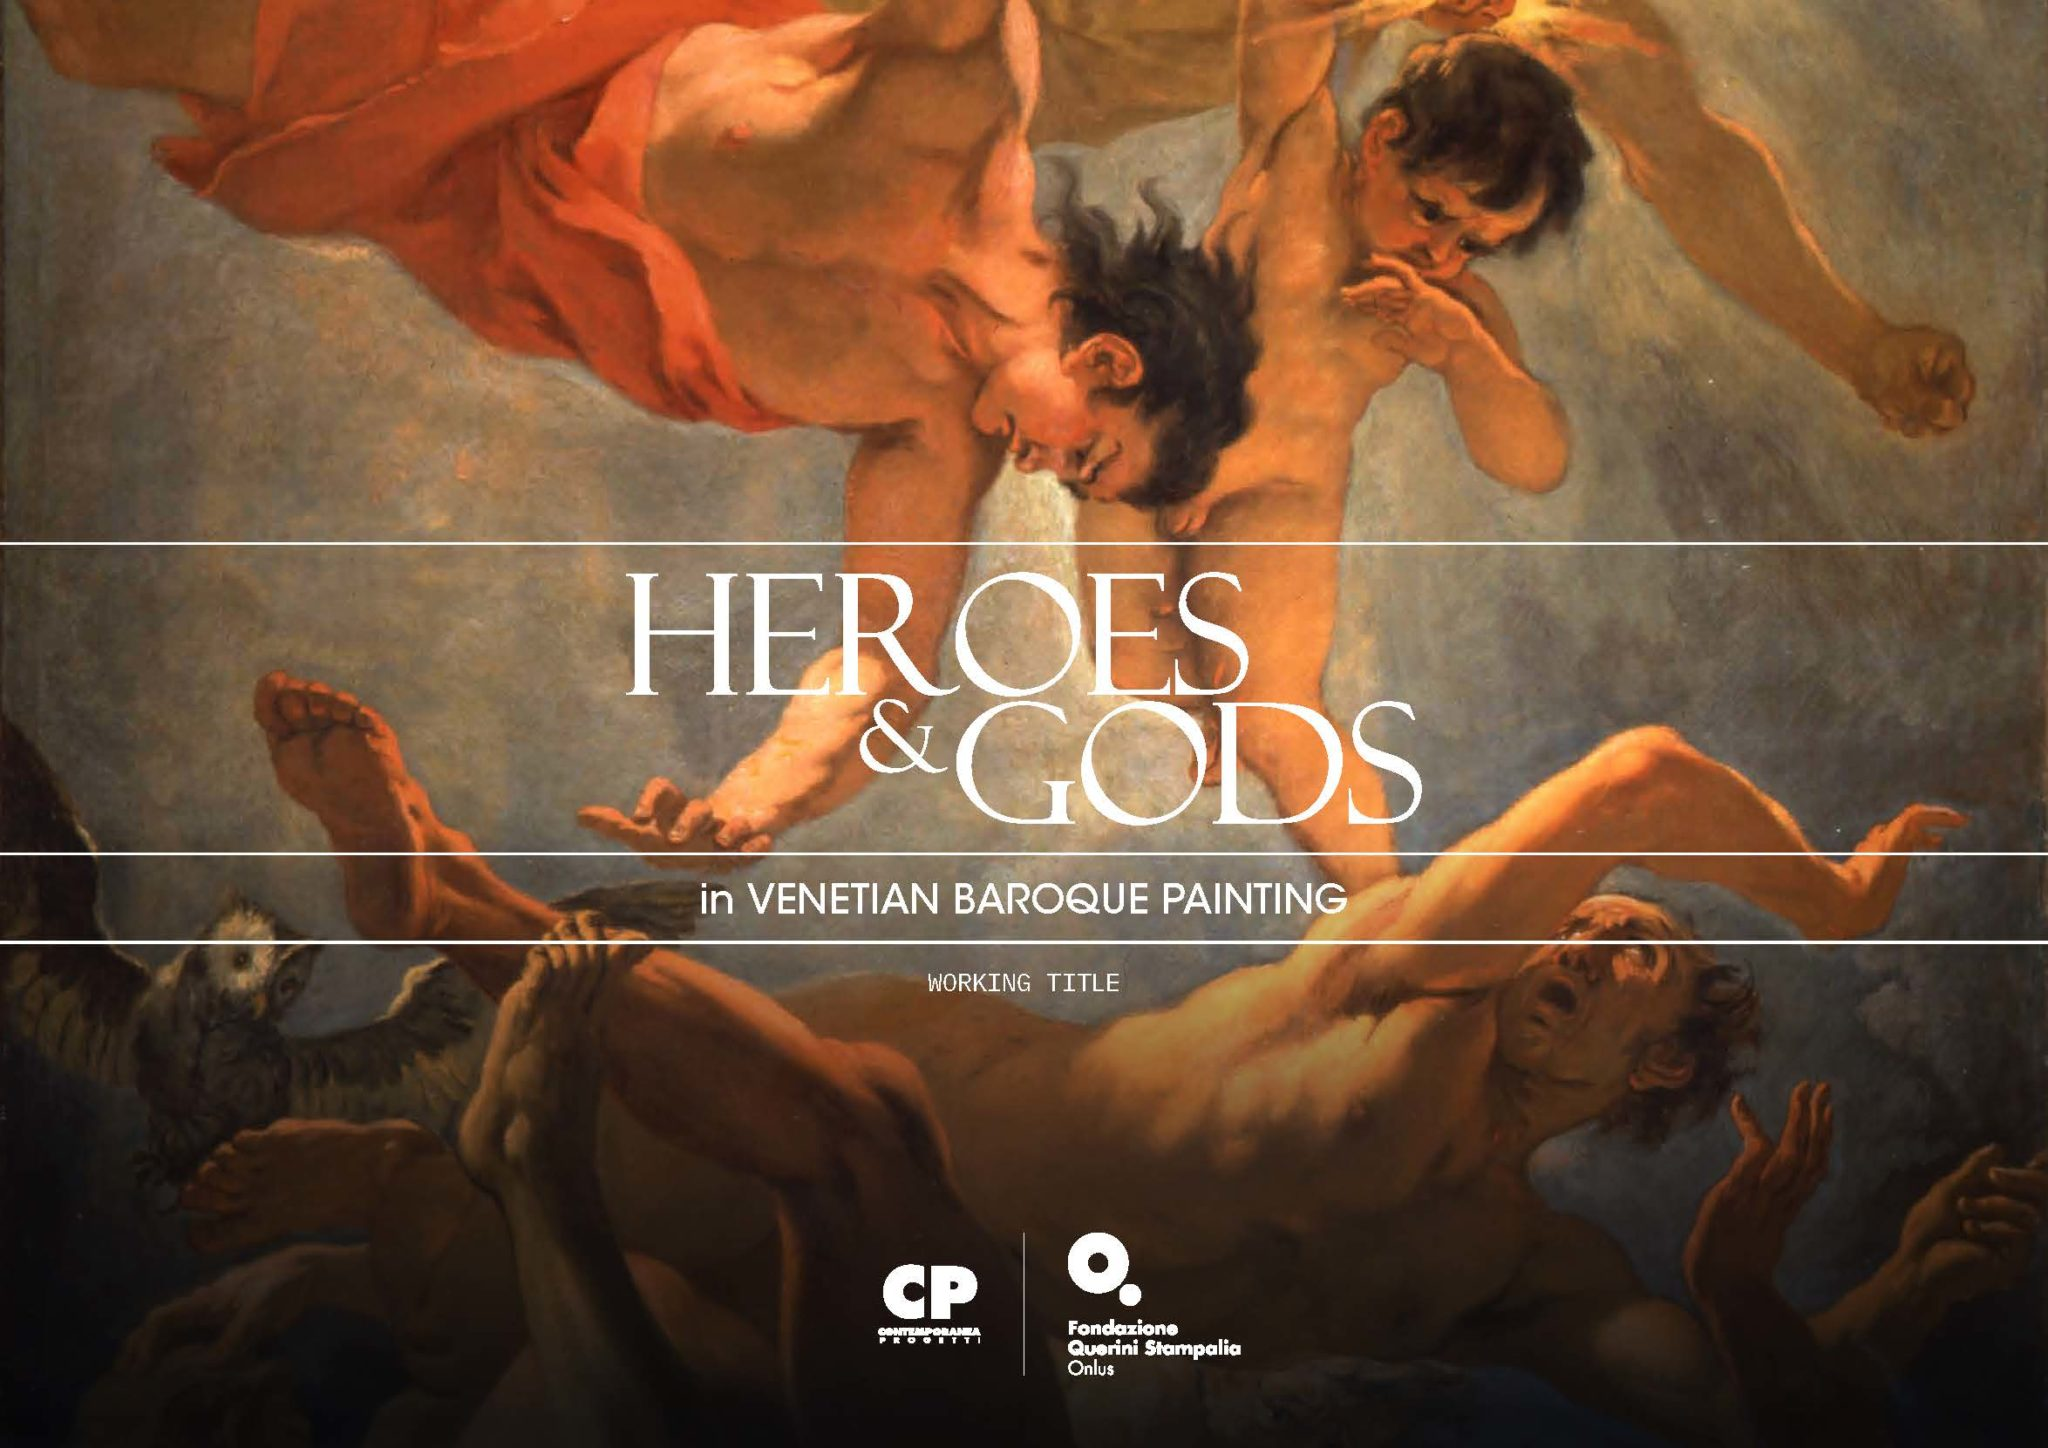 Heroes & Gods in Venetian Baroque Painting